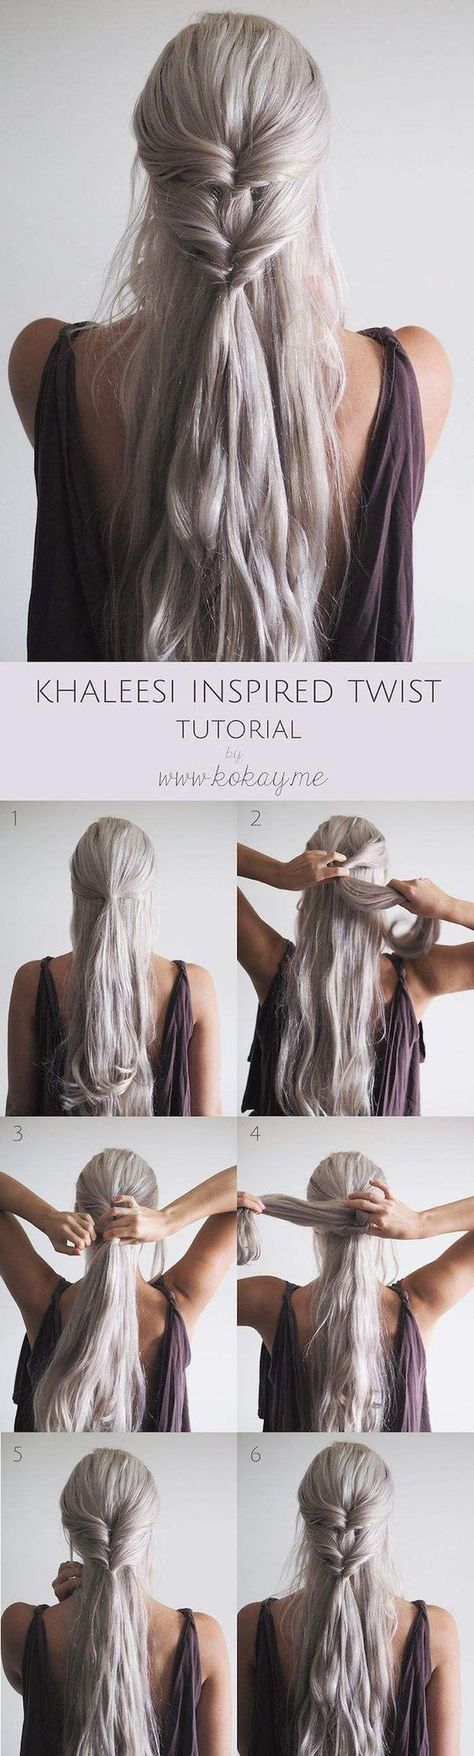 The best images about hair on pinterest balayage blonde shades